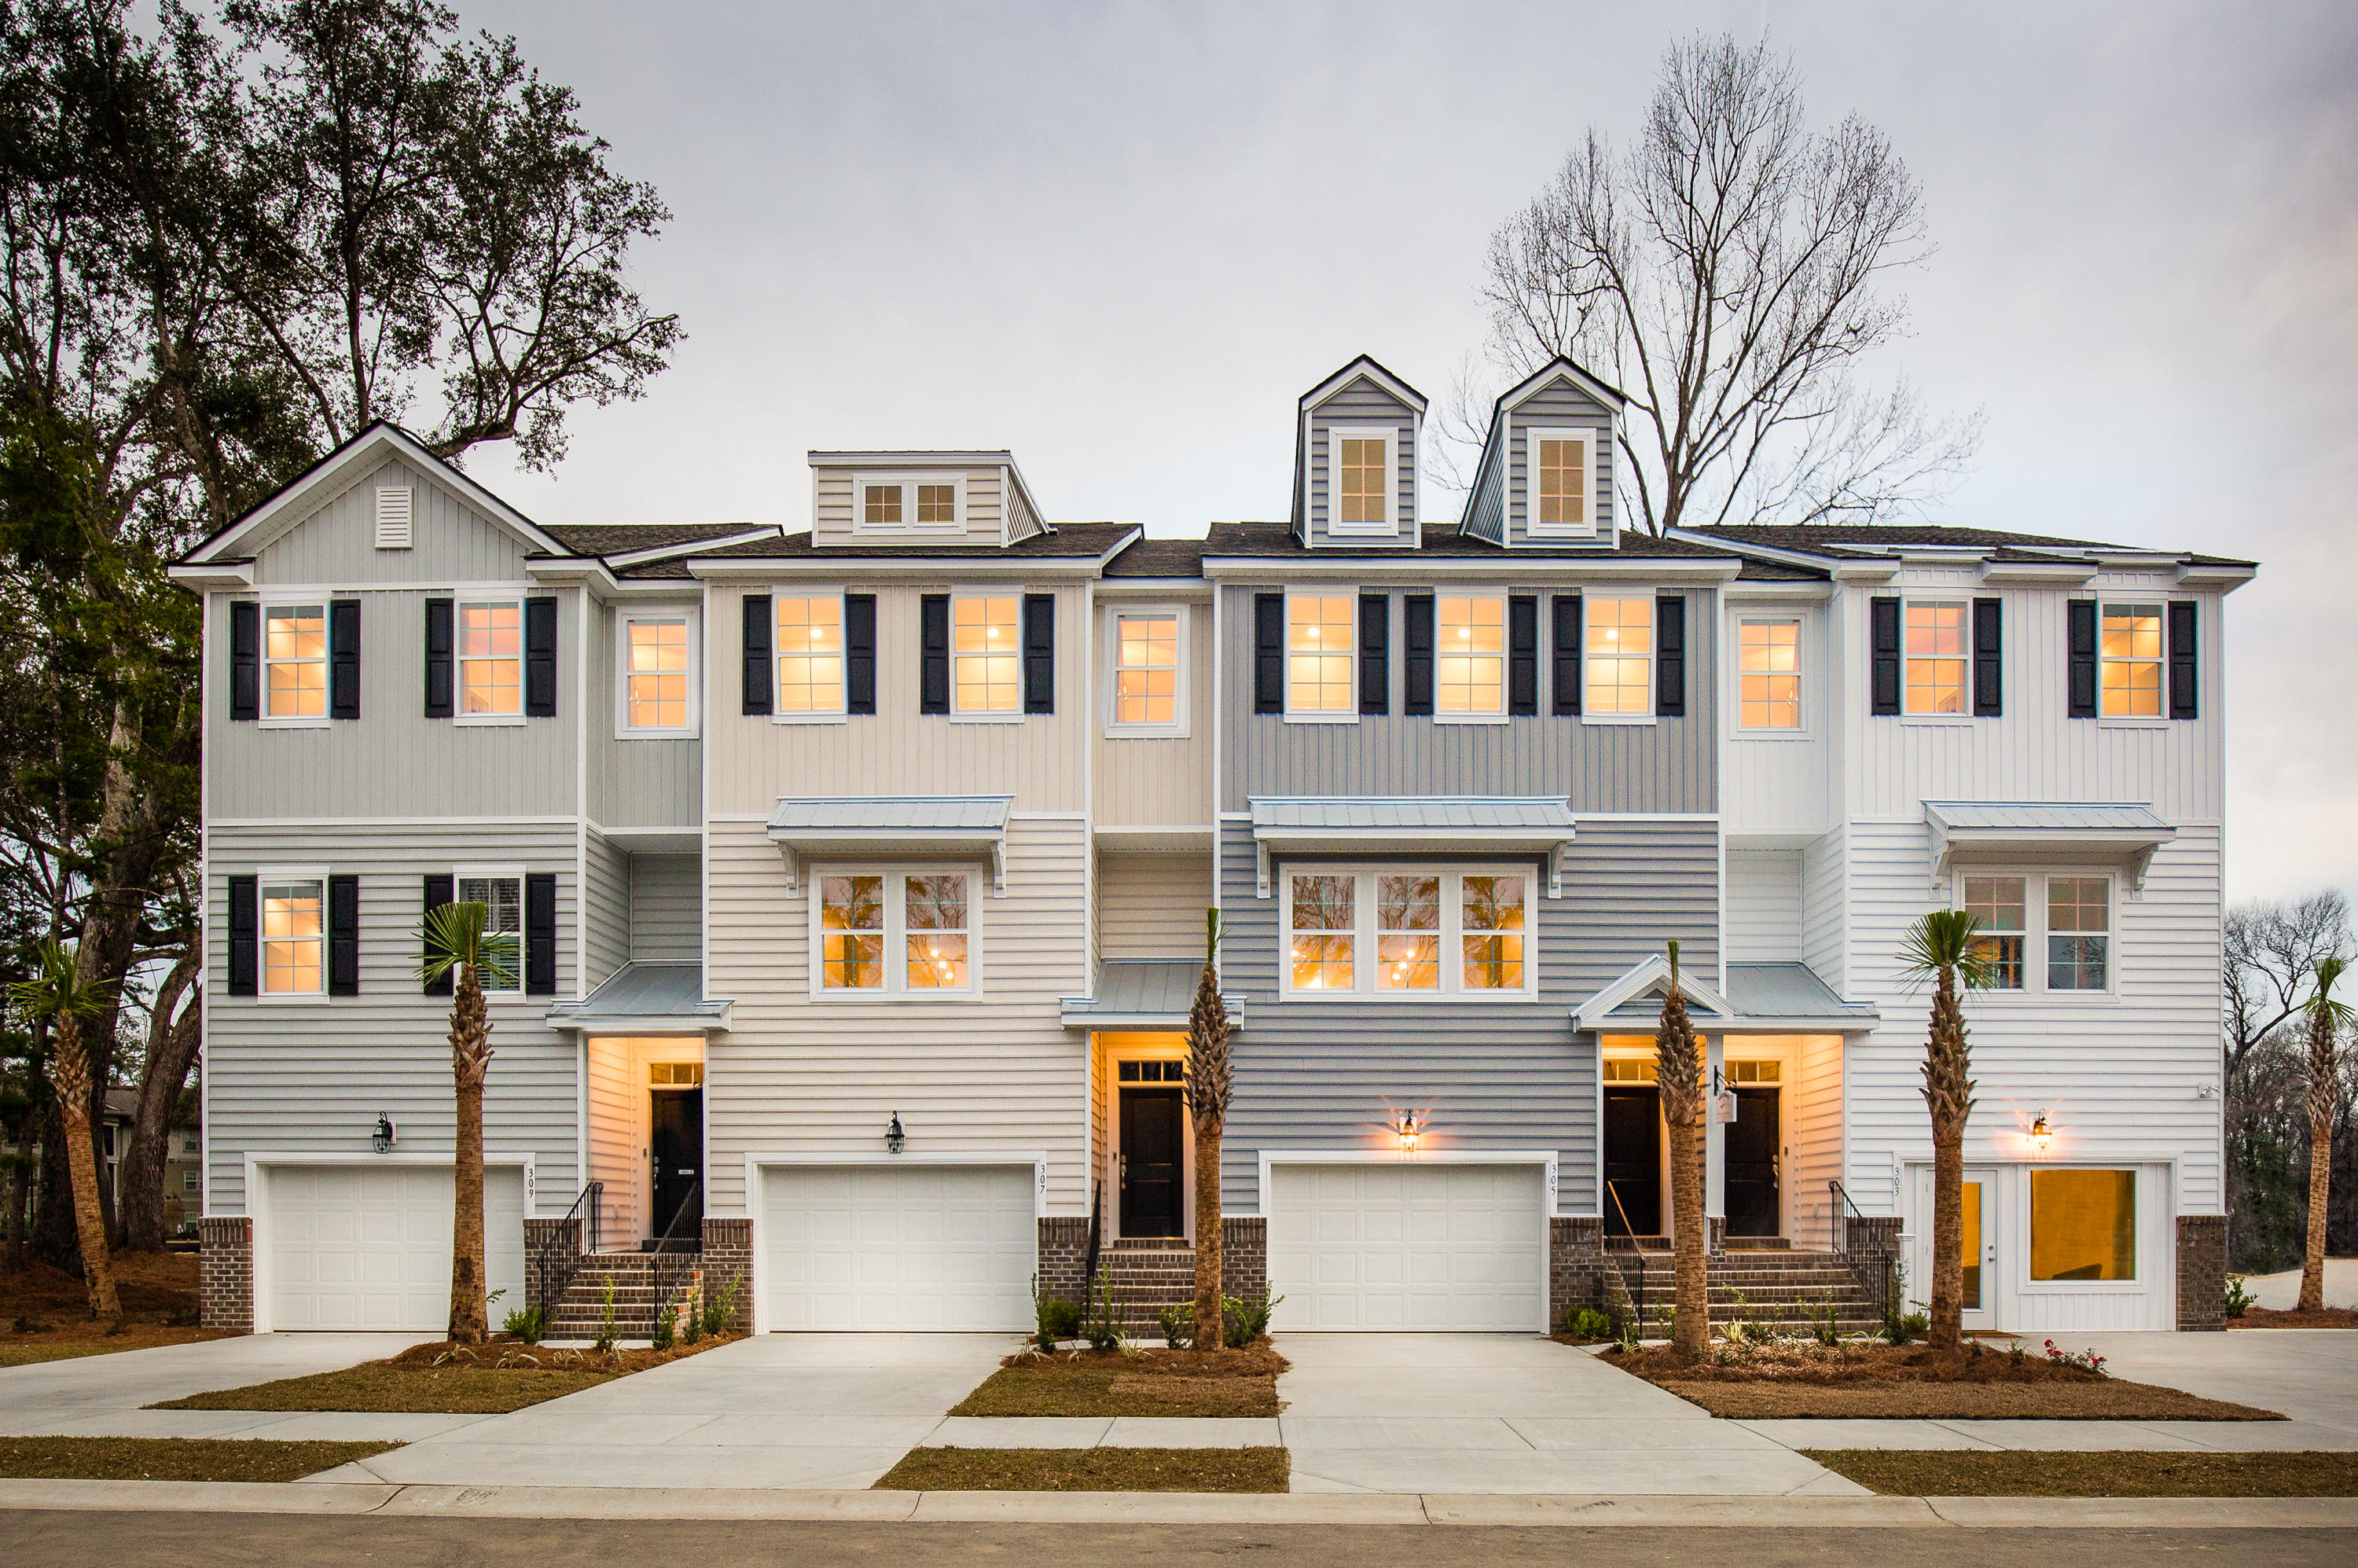 Grand Terrace Homes For Sale - 306 Spindlewood, Charleston, SC - 0